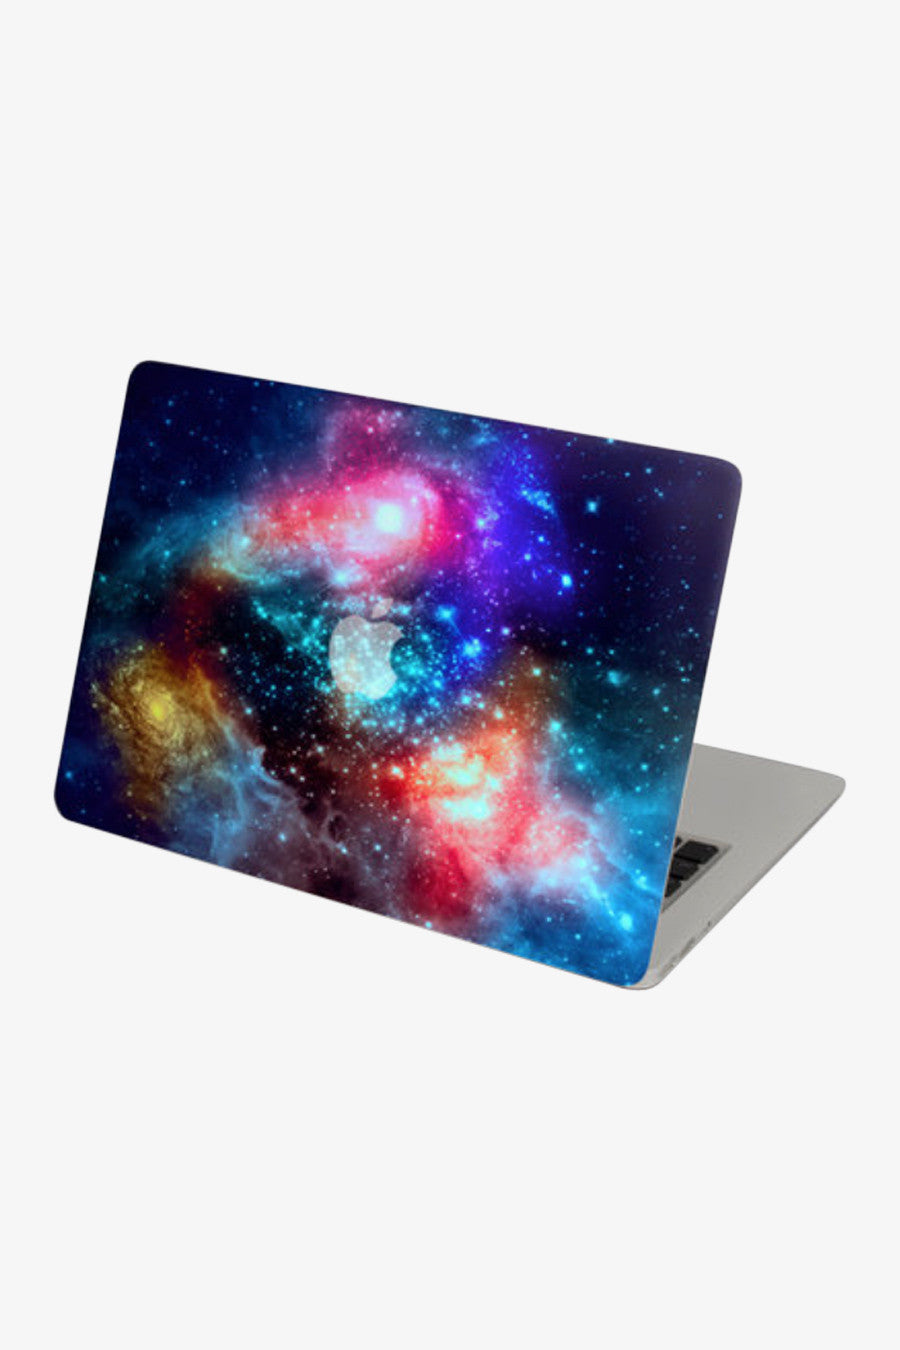 Macbook Colourful Universe Skin Decal Sticker. Art Decals By Moooh!!